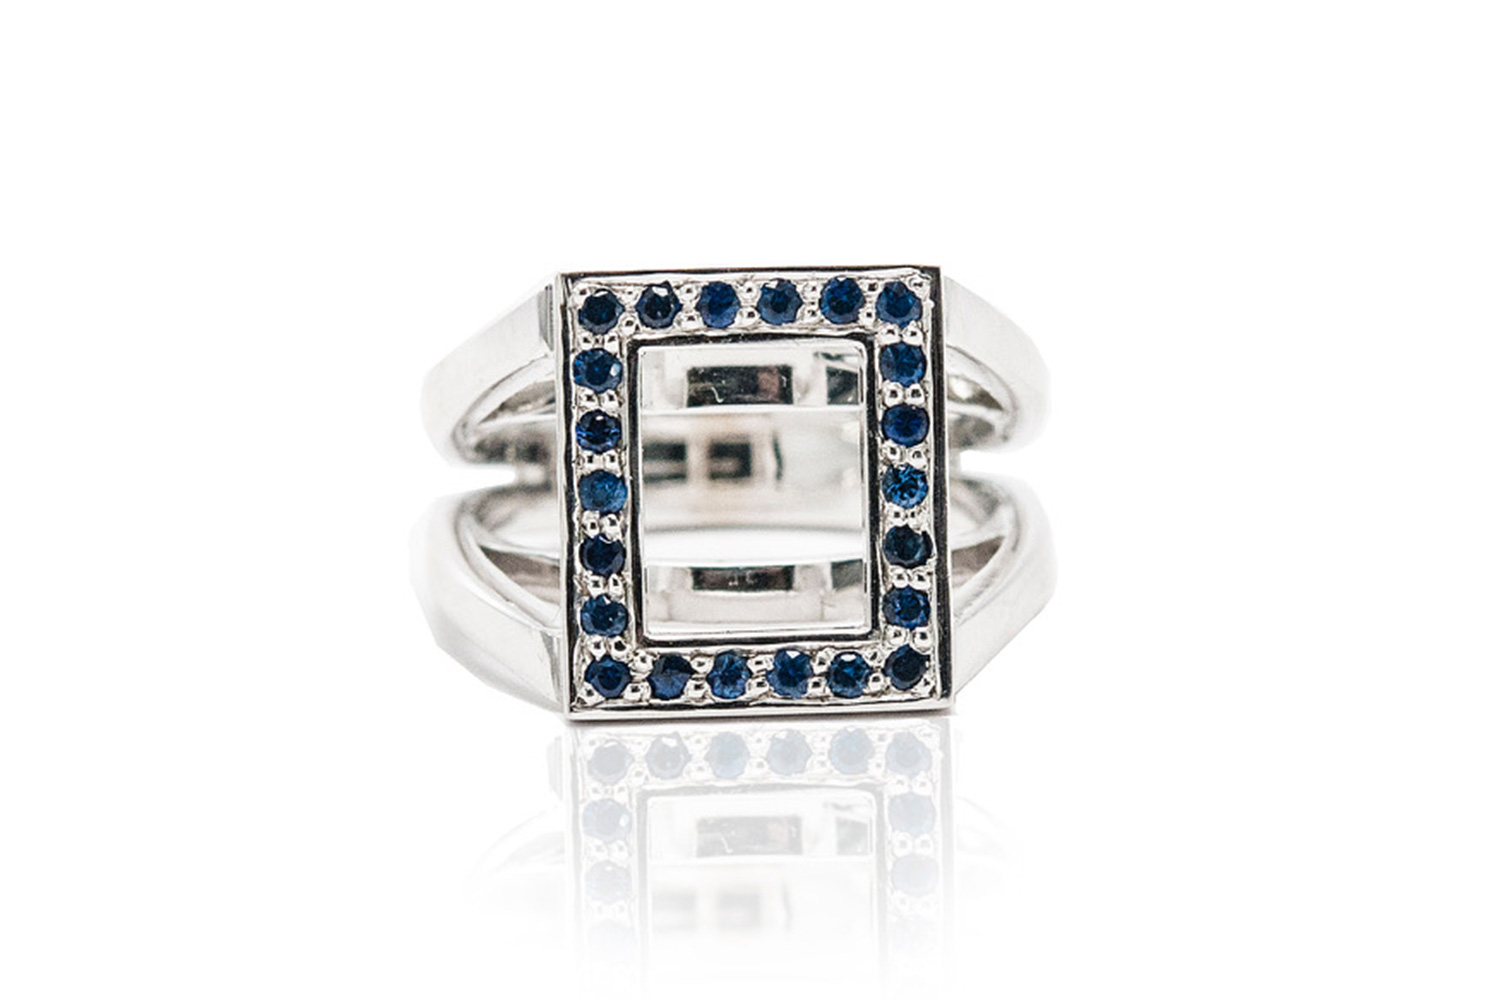 3.Sapphire & 18K White Gold Rectangle Frame Ring.jpg